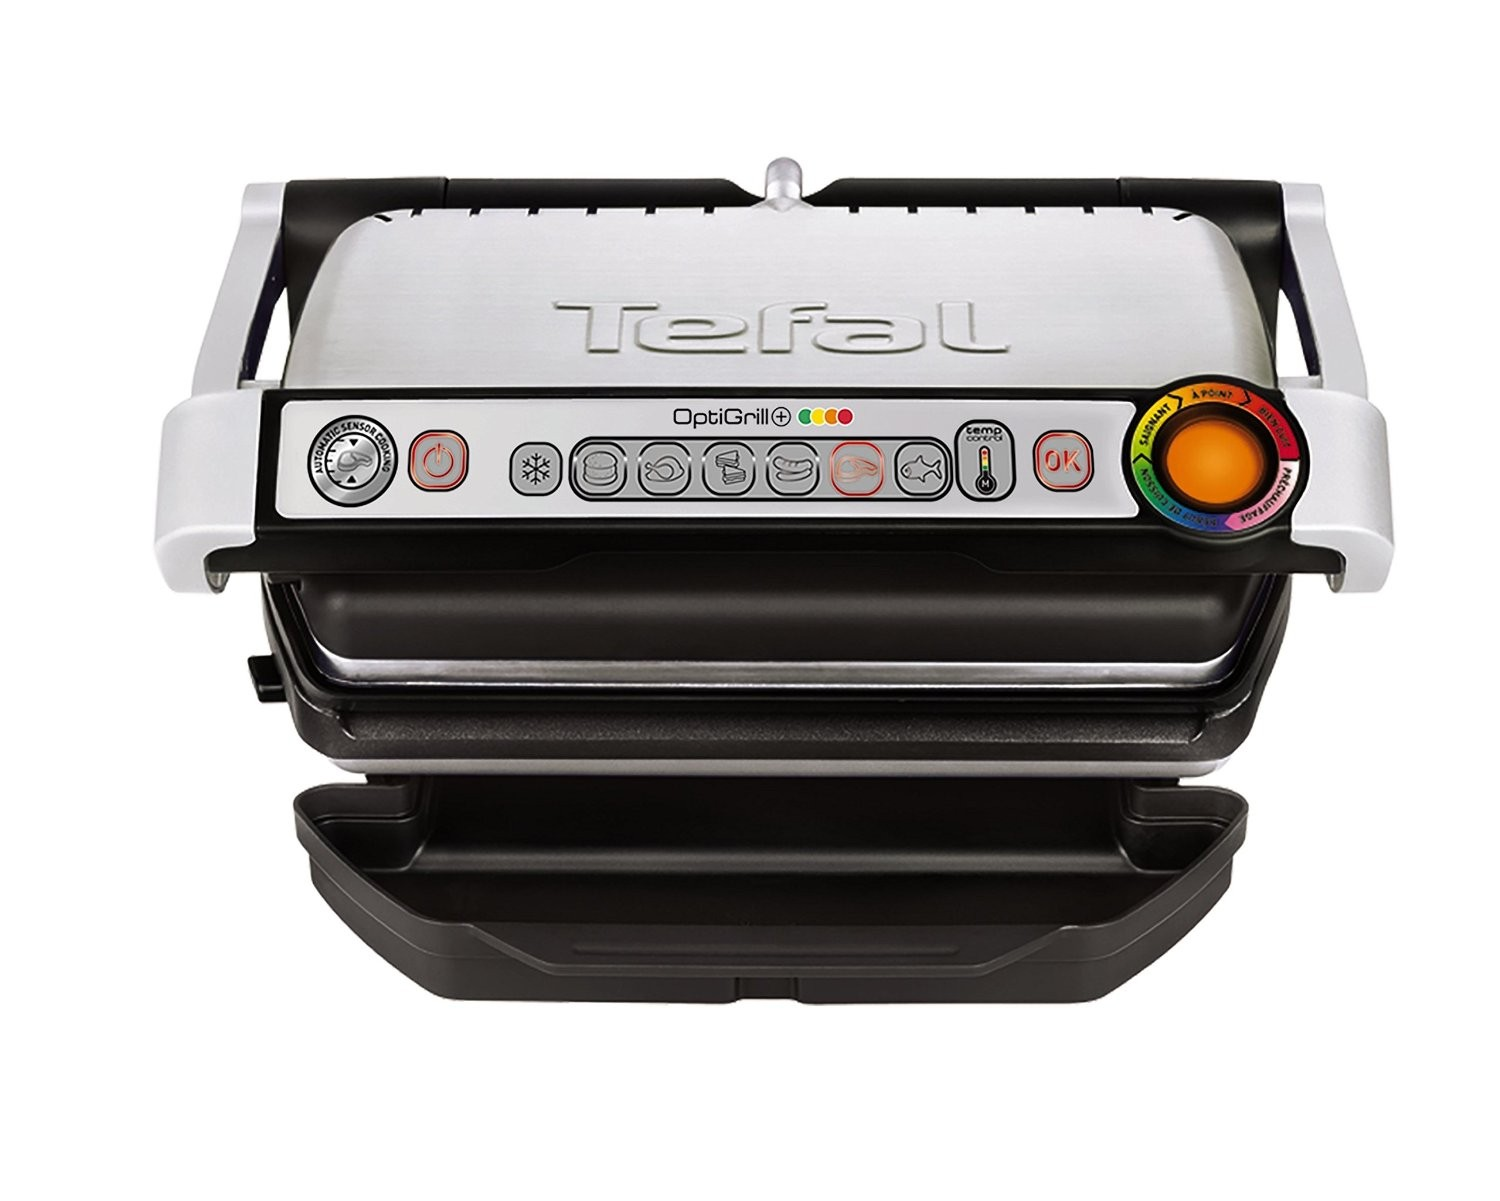 Гриль Tefal 712D34 Optigrill Plus